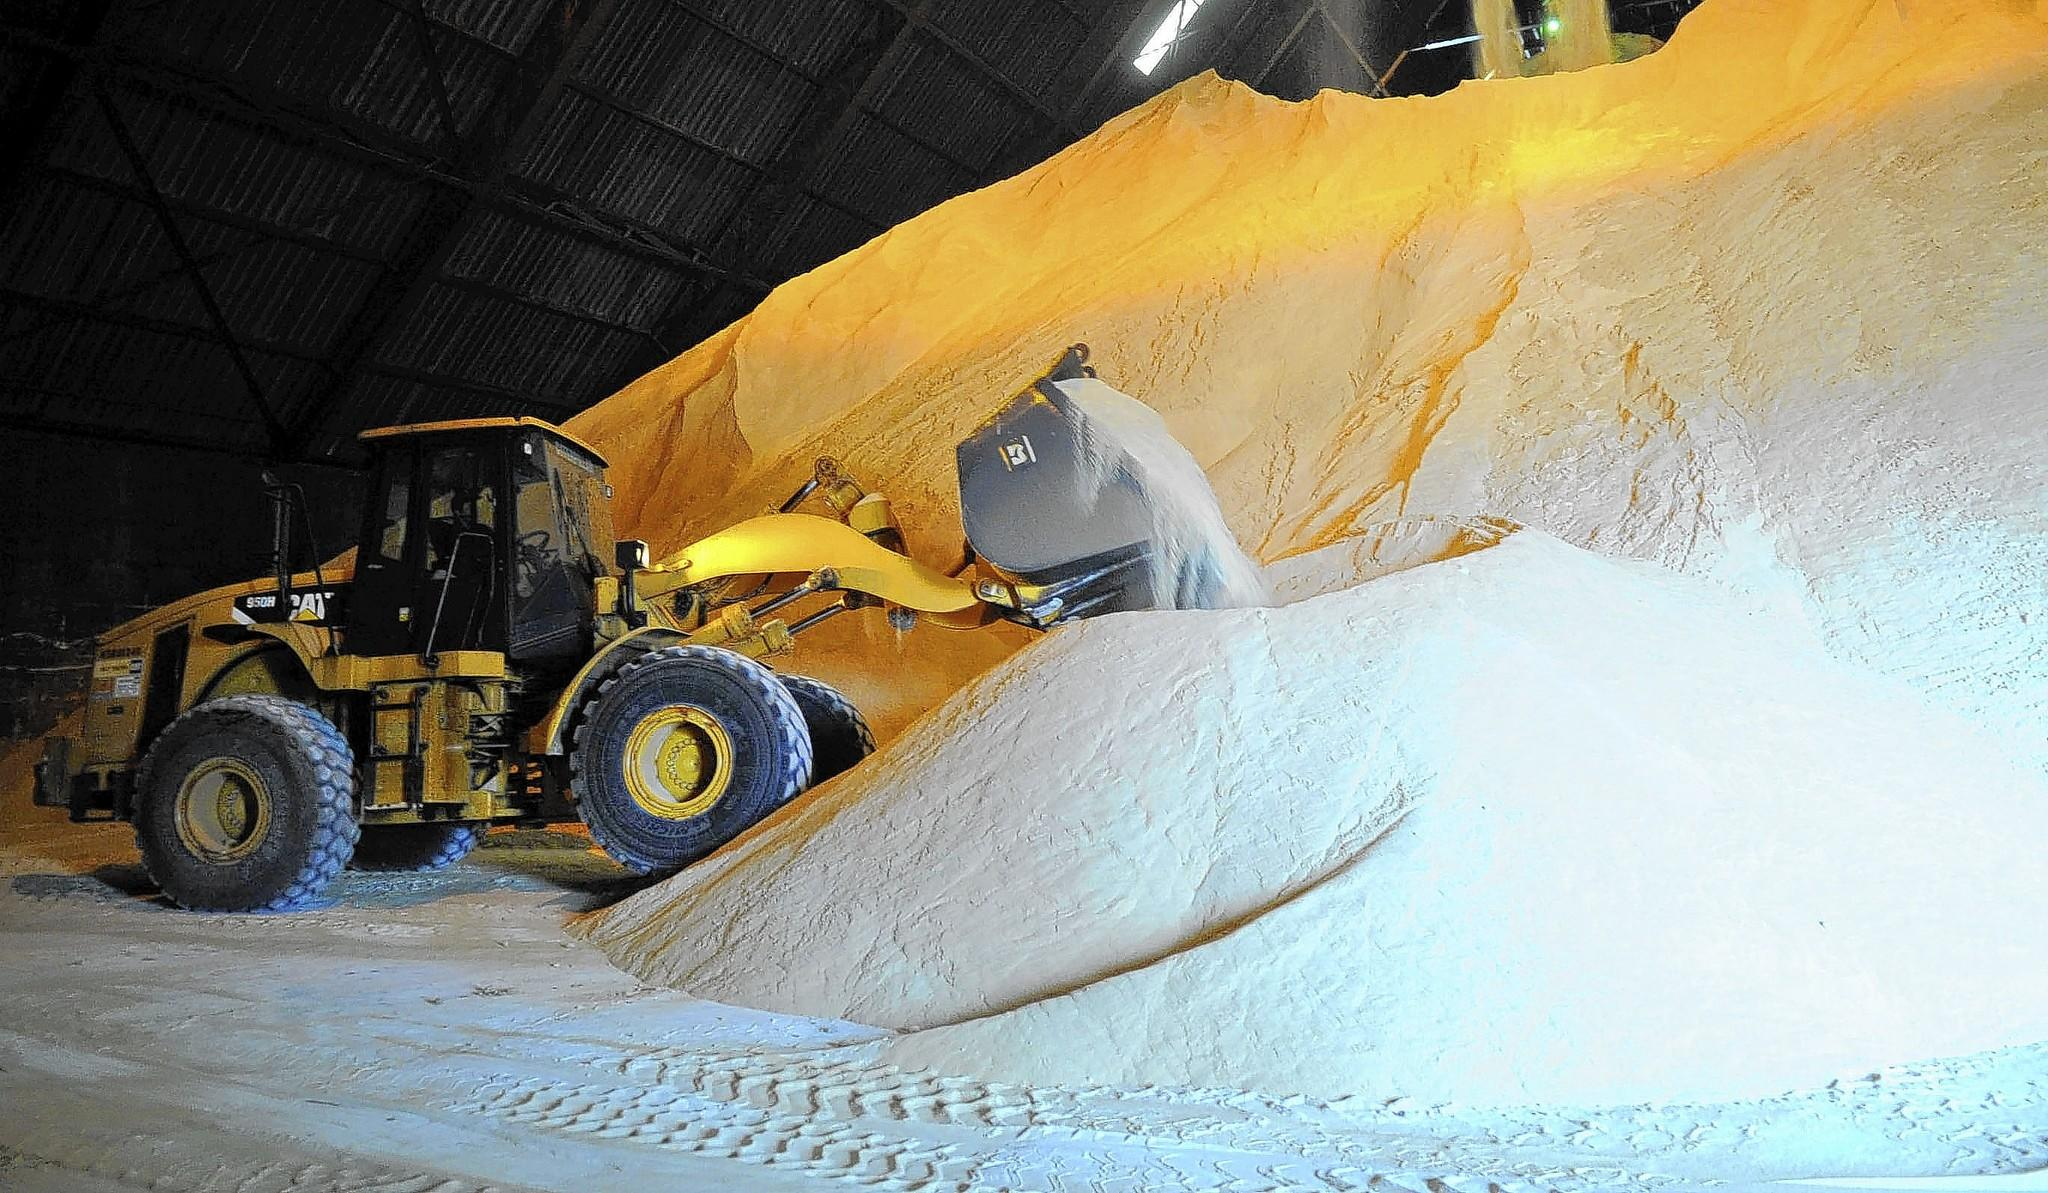 A front end loader operator moves mountain of sugar like sand inside the sugar warehouse at the Port of Palm Beach.